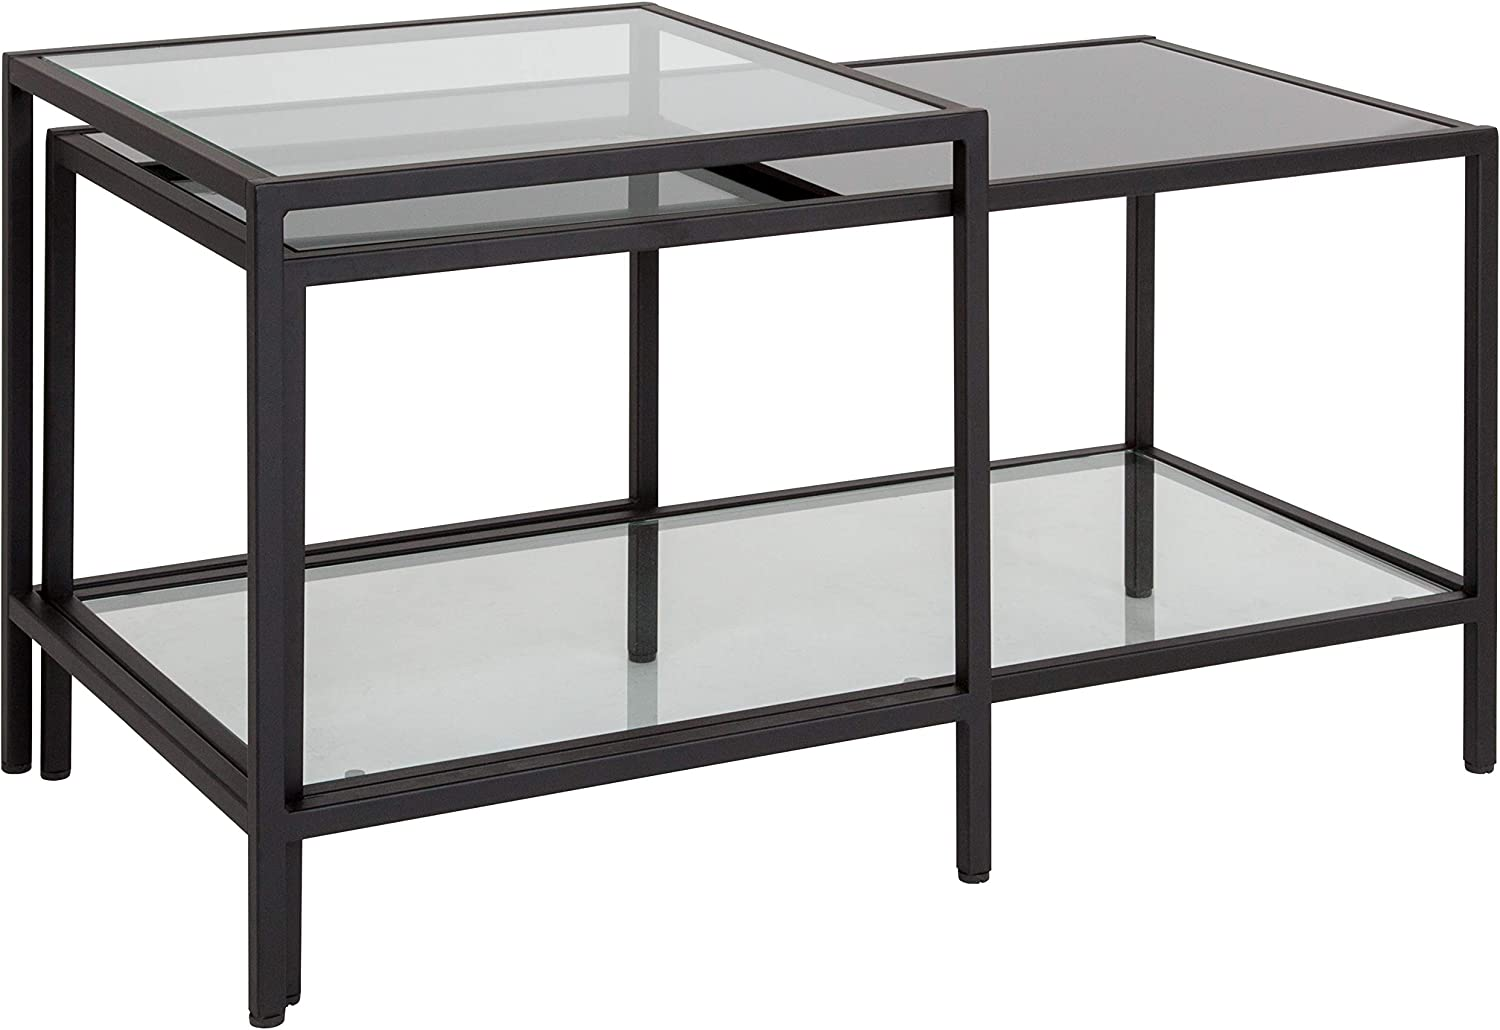 Flash Furniture Westerly Multi-Tiered Glass Coffee Table with Black Metal Frame